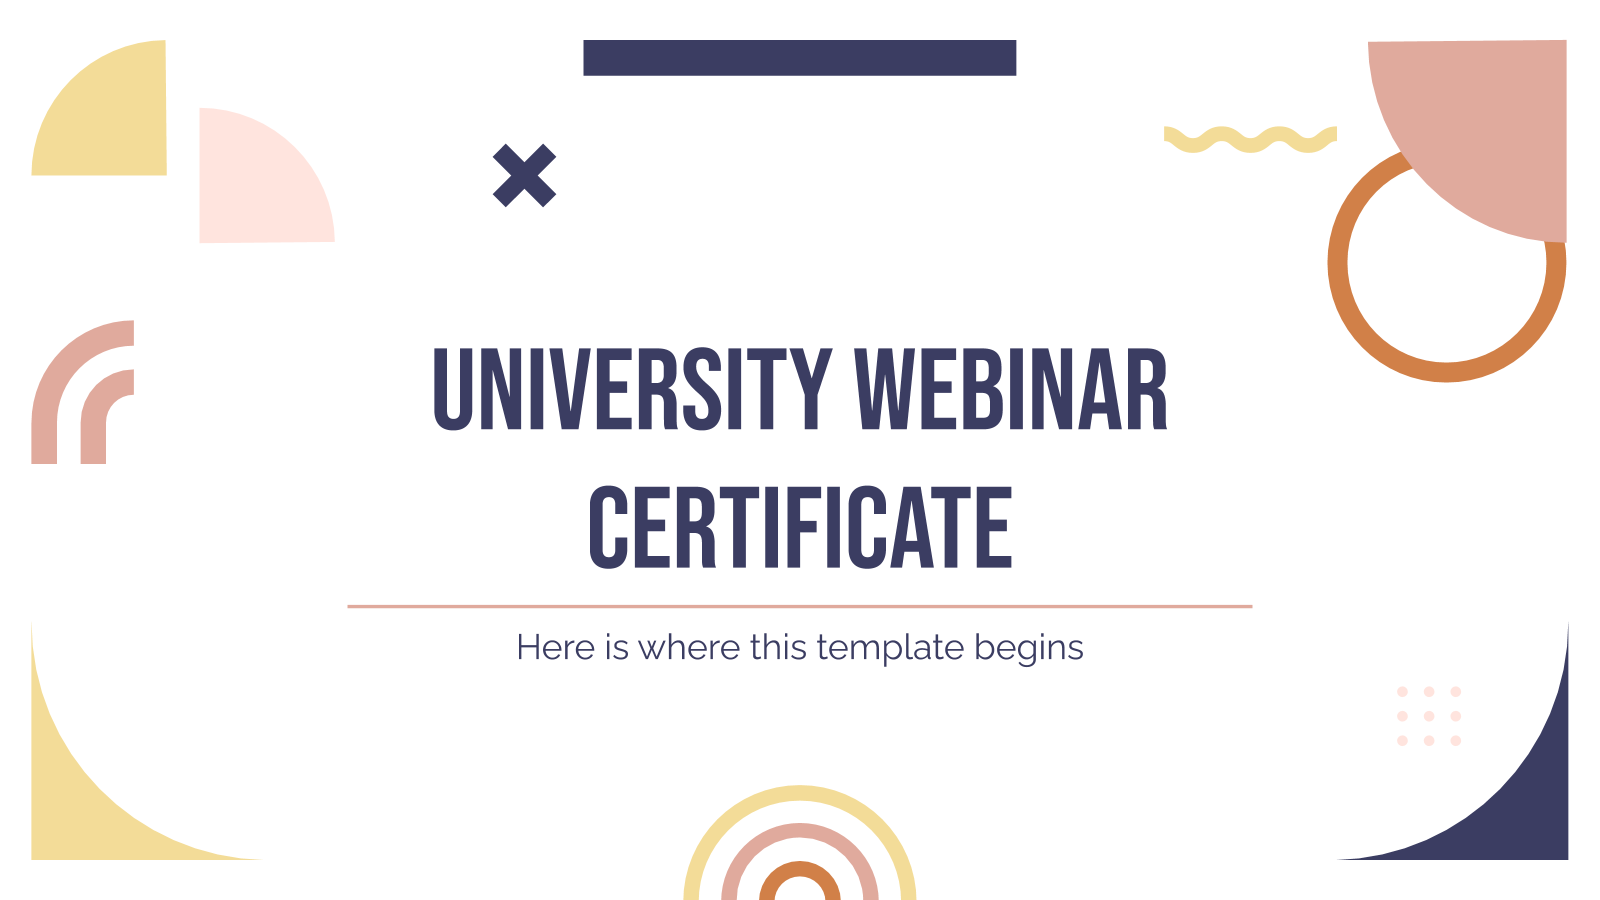 University Webinar Certificate presentation template